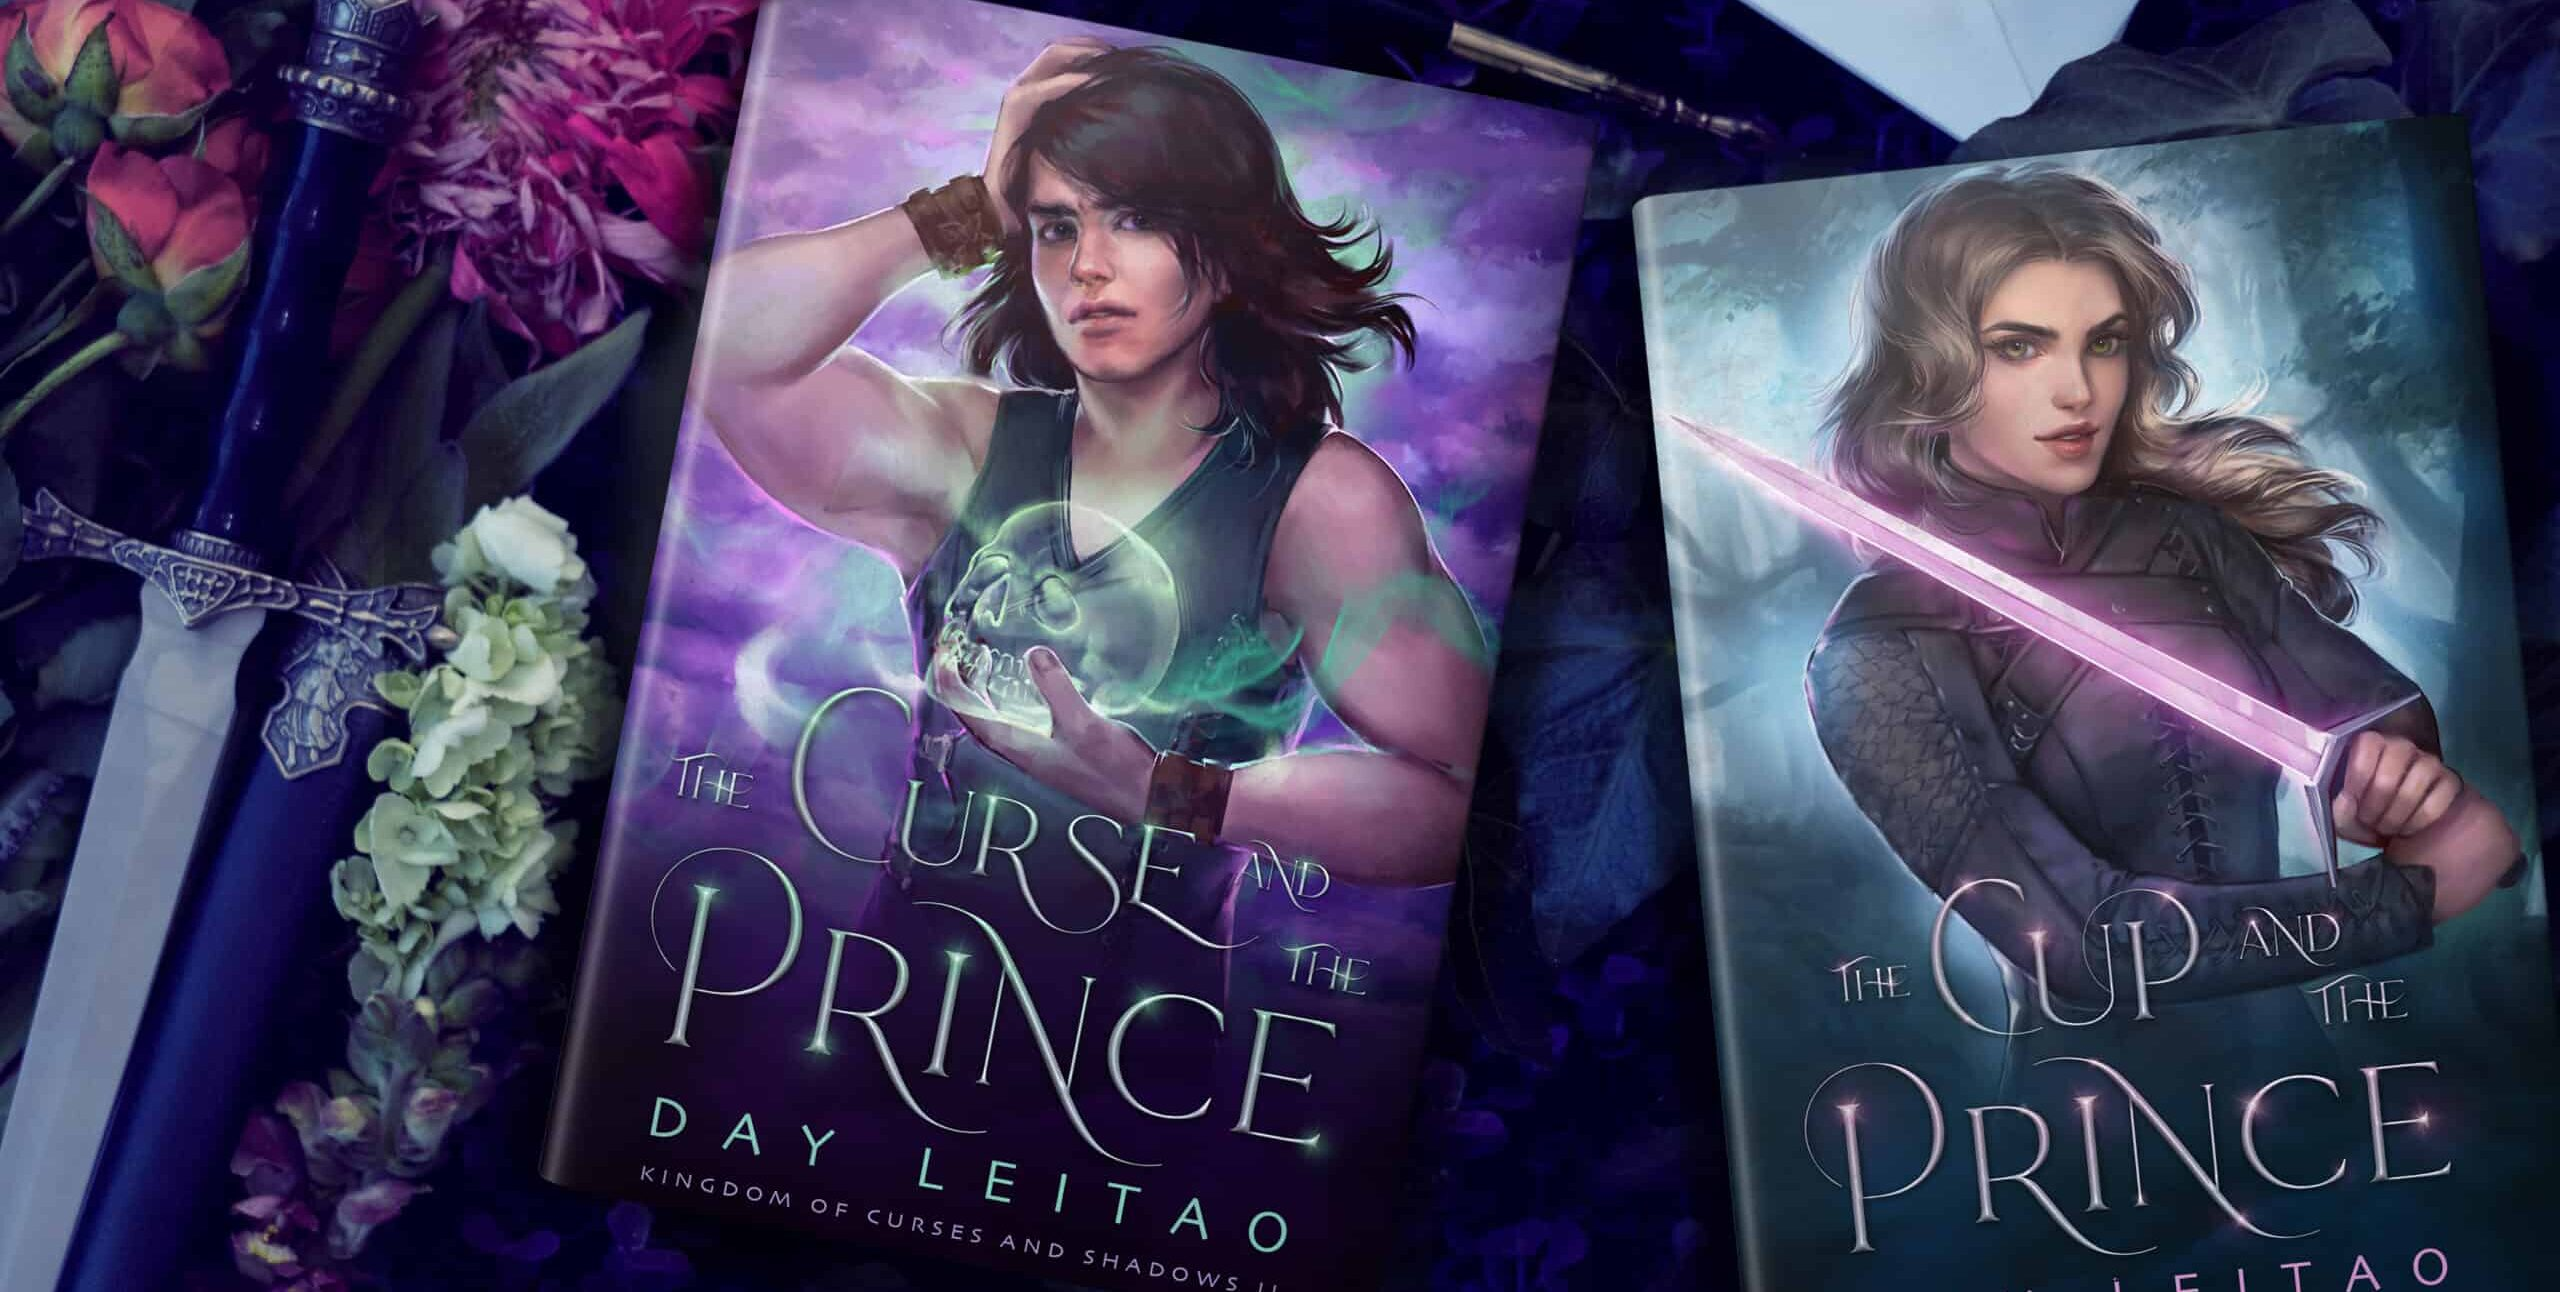 The Curse and the Prince, book 2 in Kingdom of Curses and Shadows, is out!